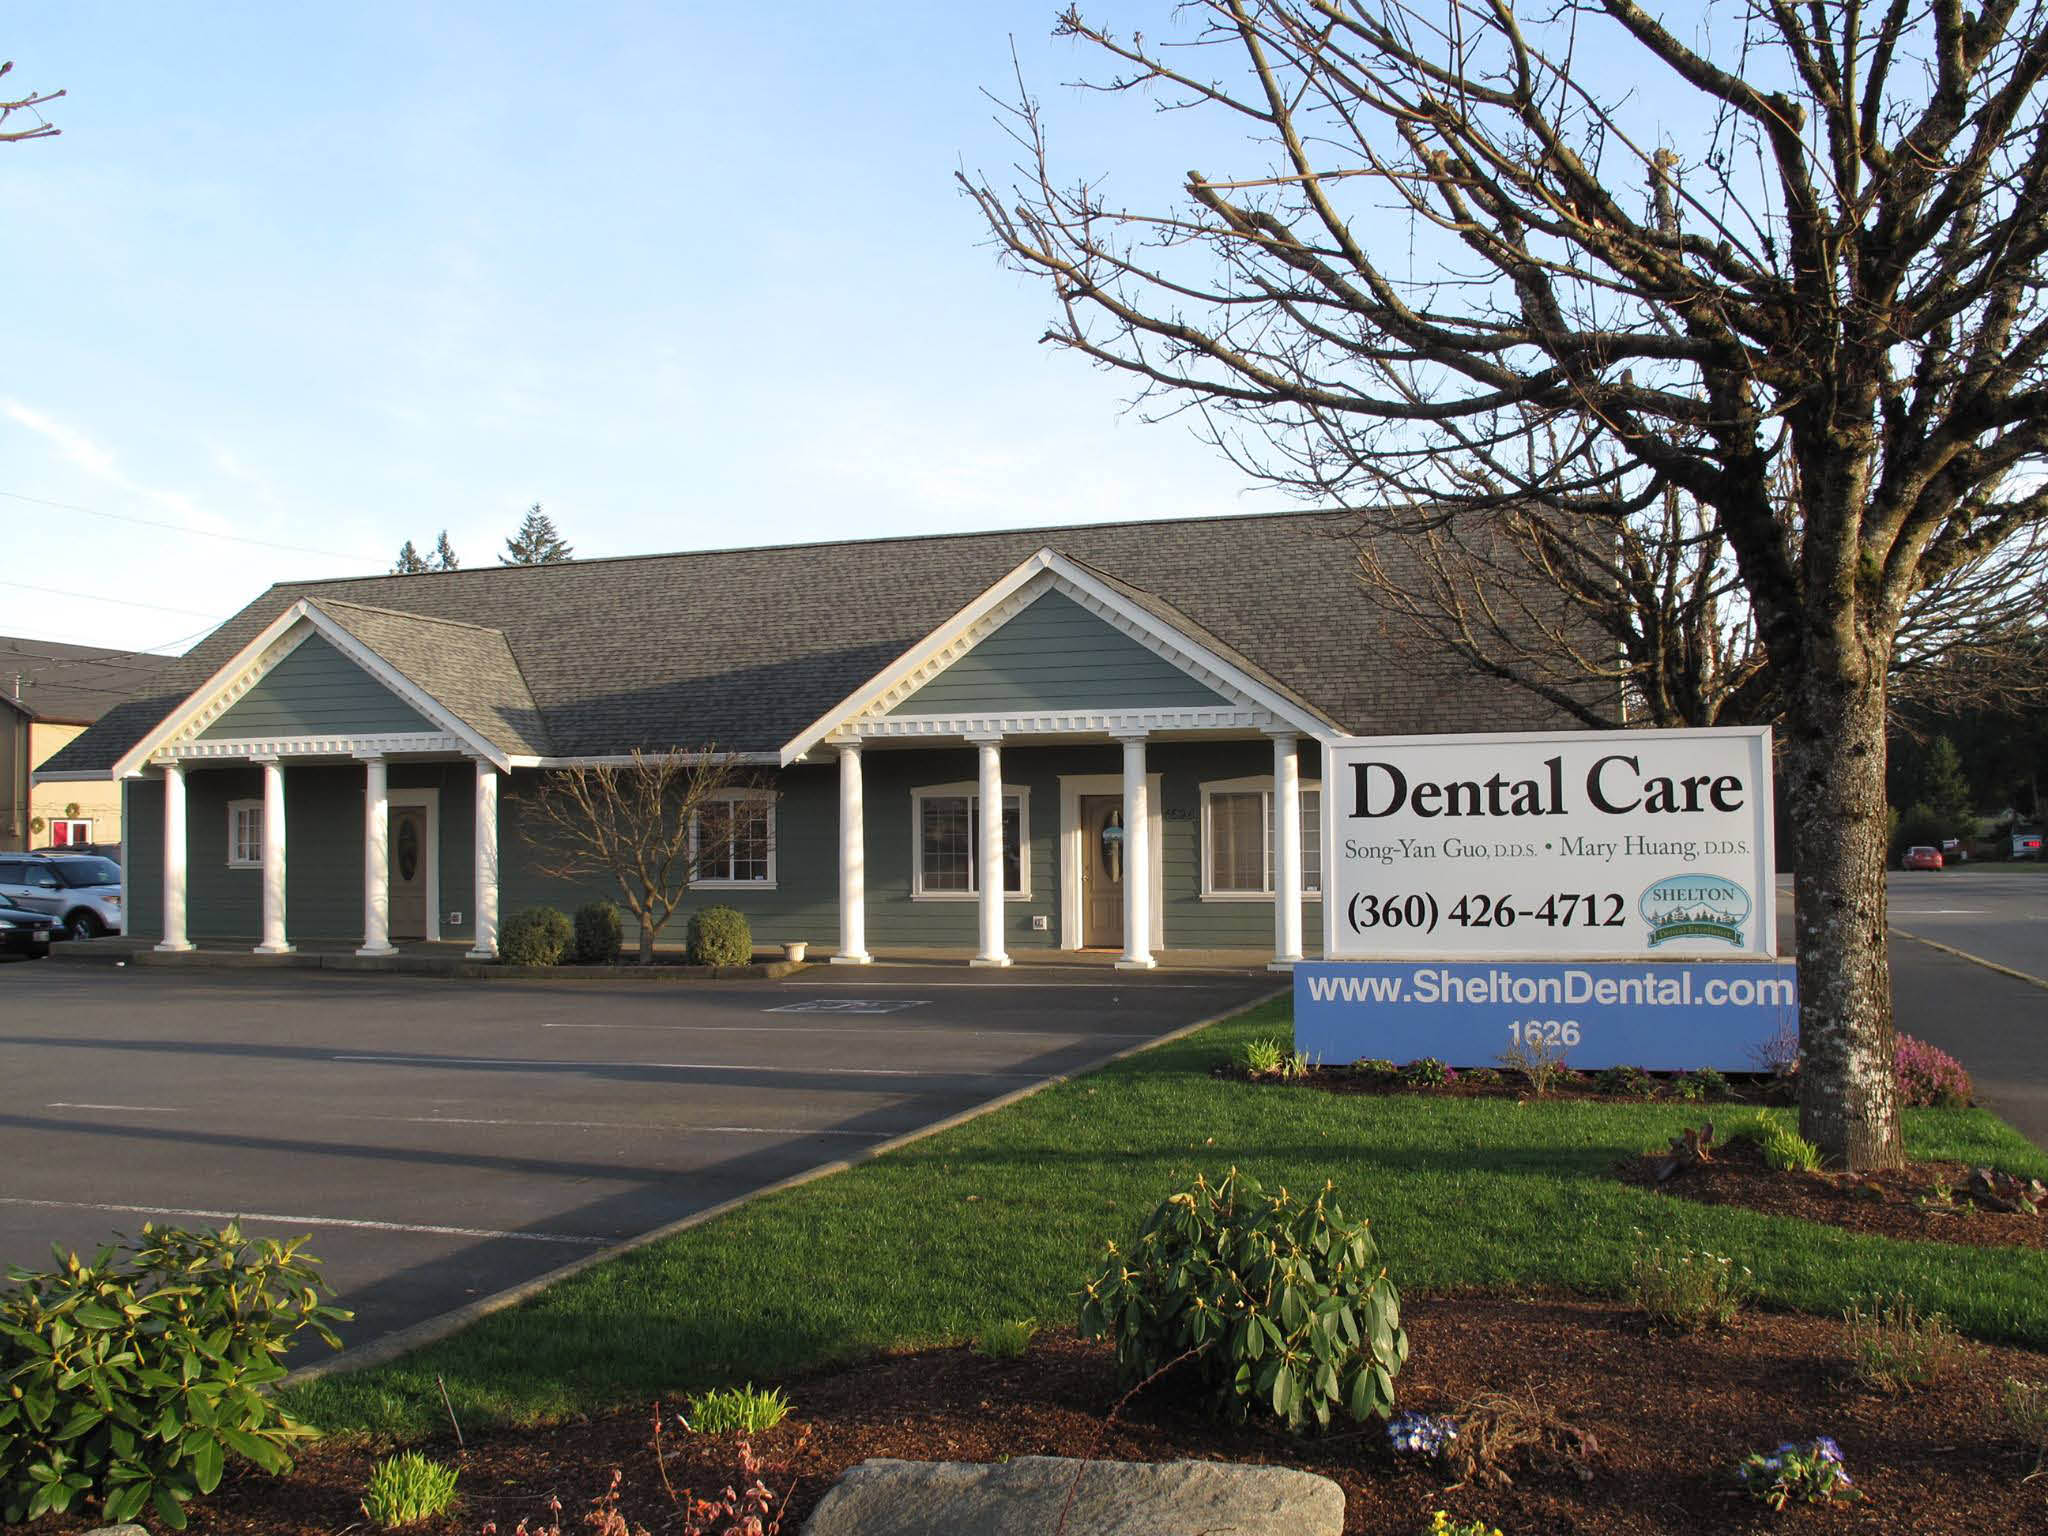 Outside Shelton Dental Excellence - exterior of Shelton Dental Excellence - fun dental office in Shelton, WA